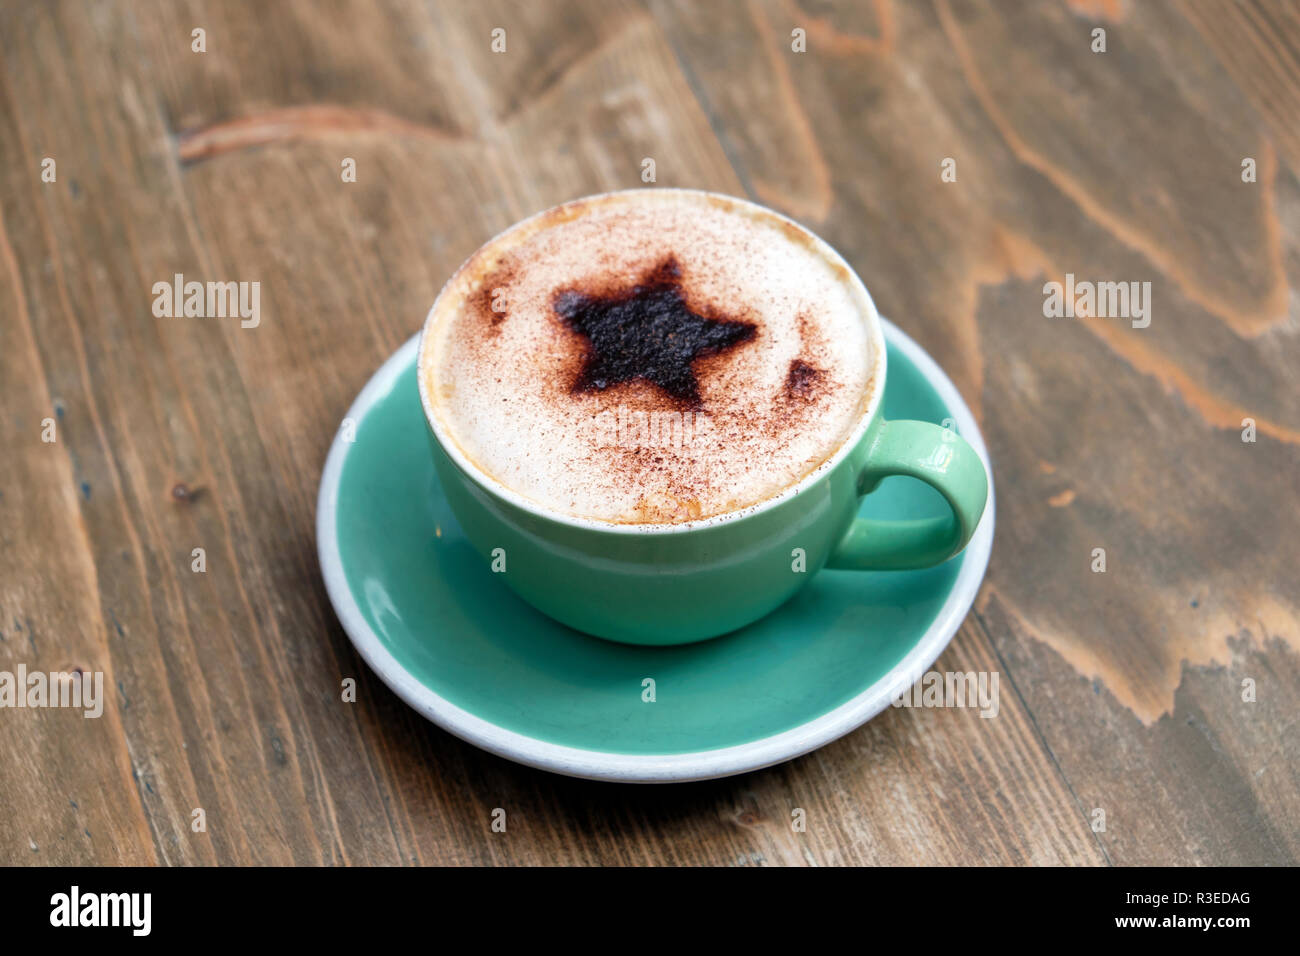 Cup of cappuccino coffee with a Christmas star design of chocolate sprinkled on frothy milk in green cup & saucer on wooden table  UK  KATHY DEWITT - Stock Image